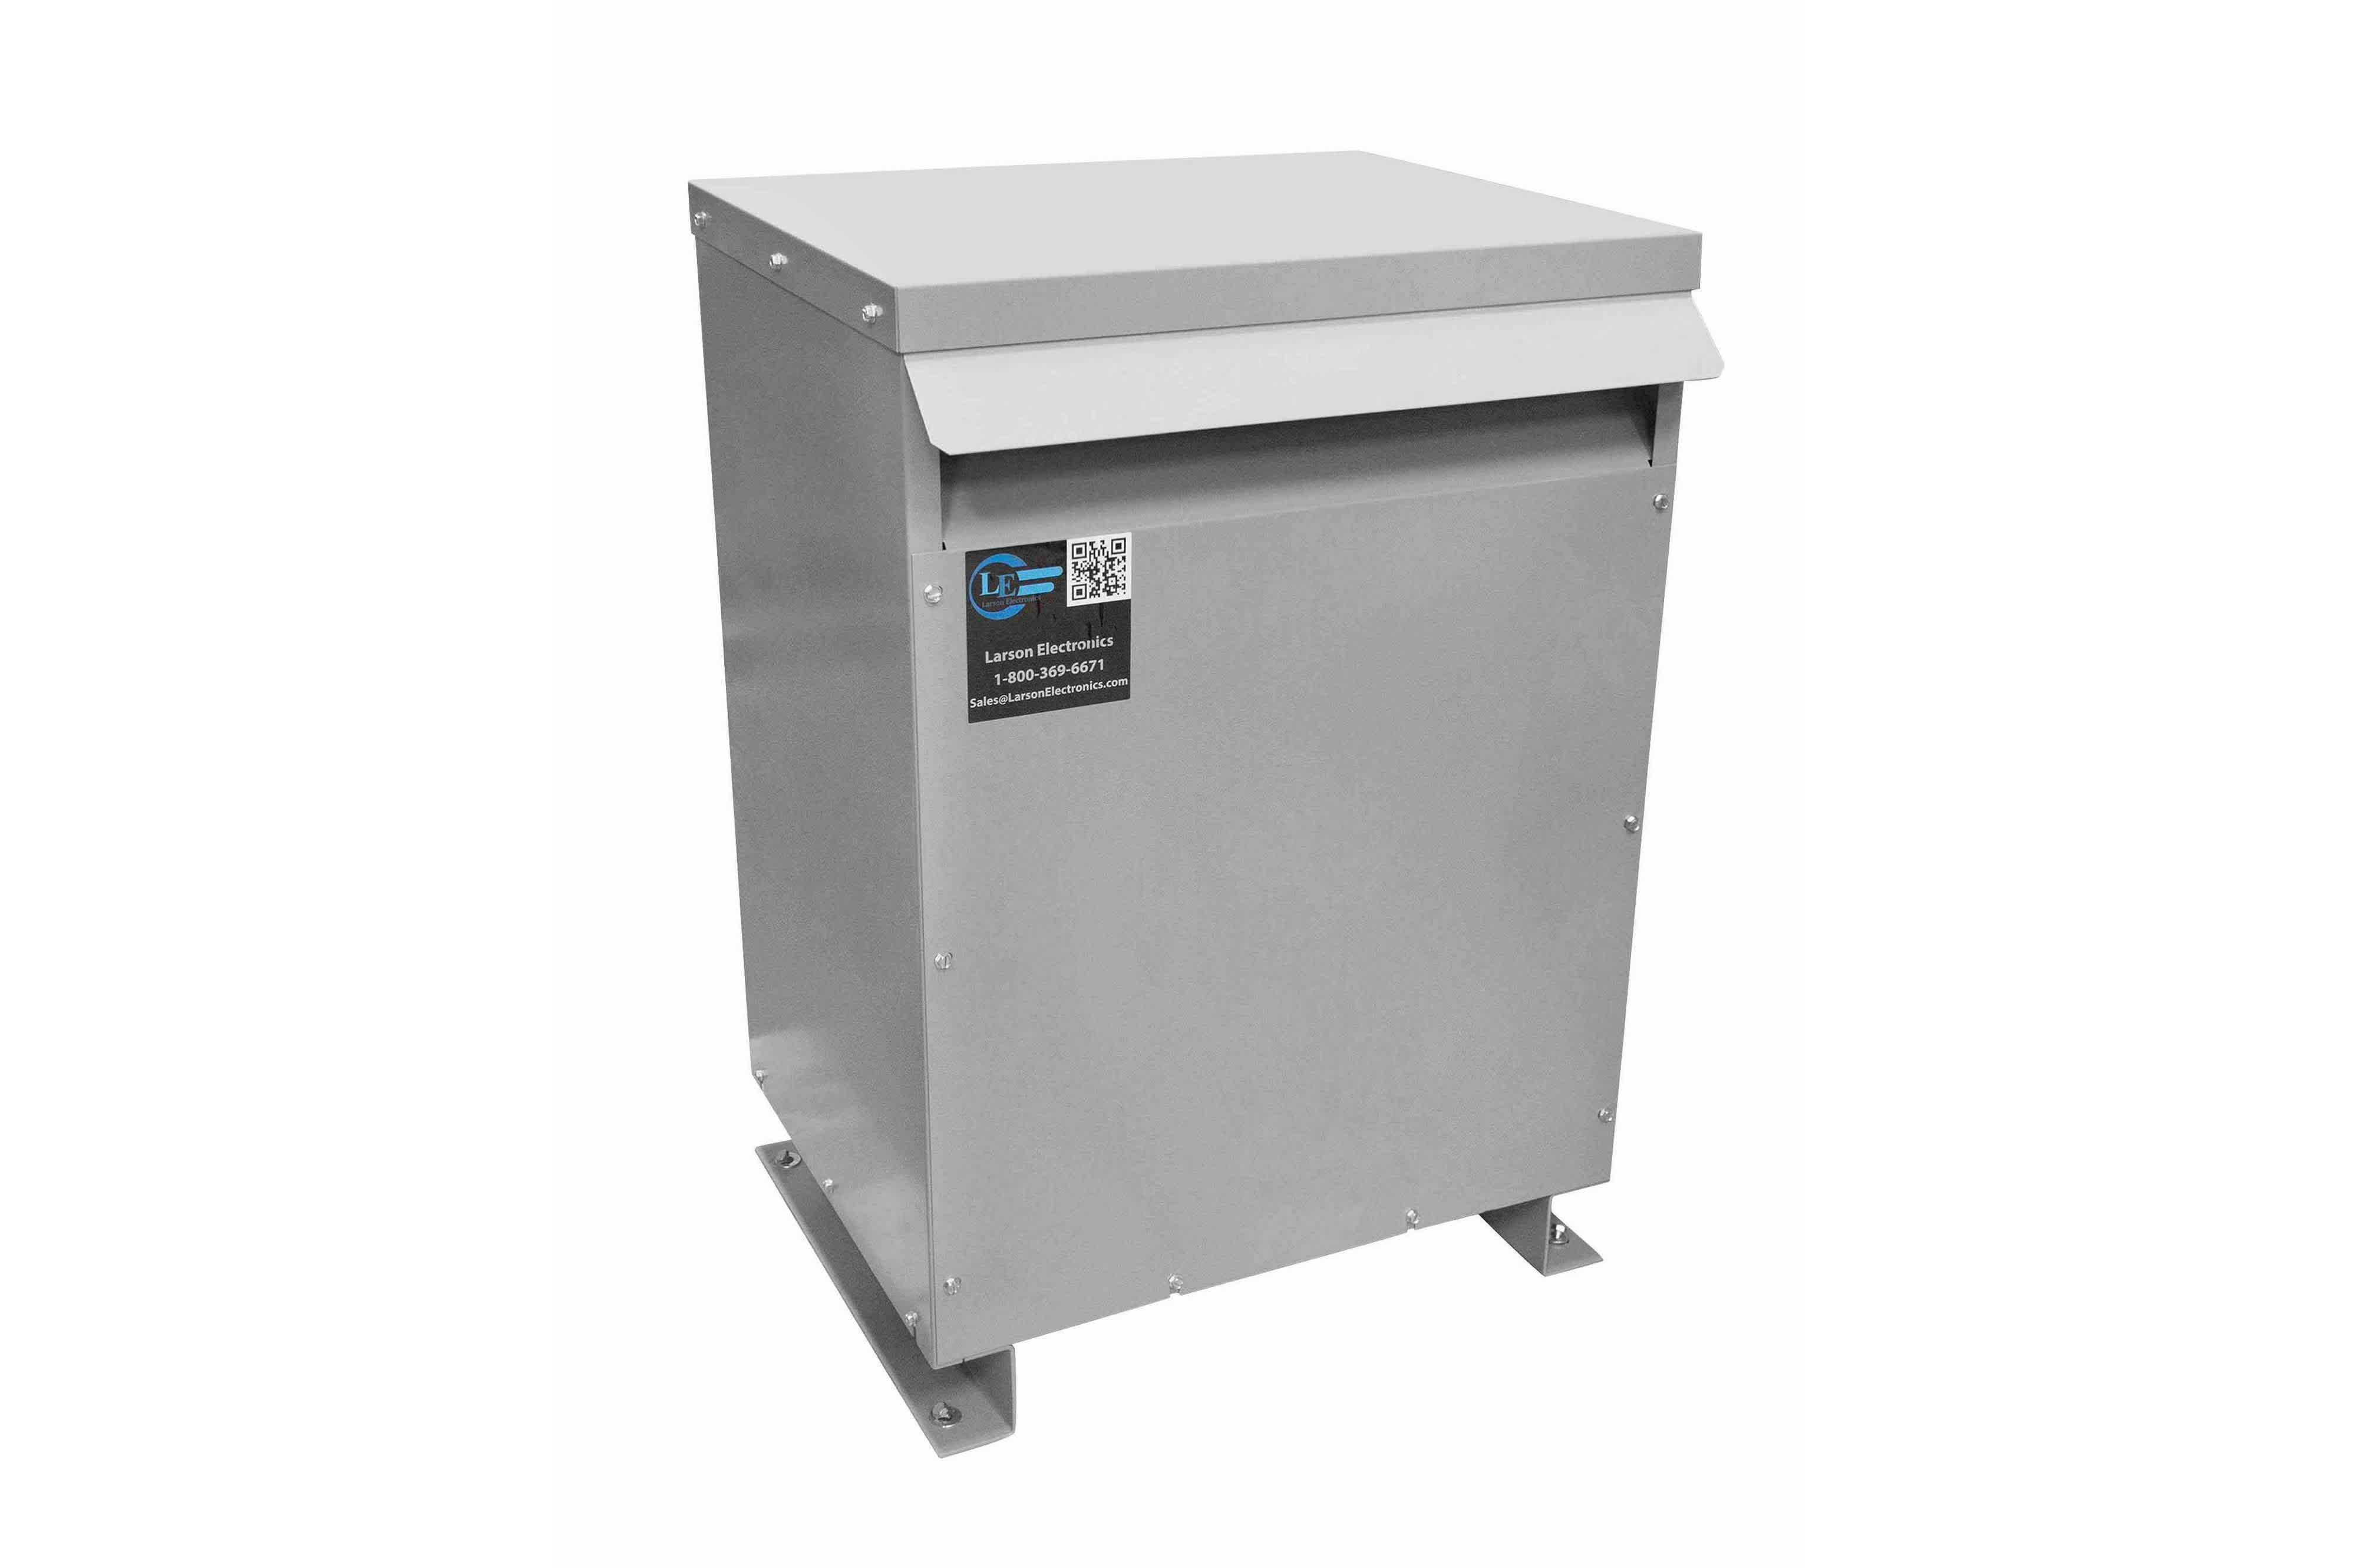 137.5 kVA 3PH Isolation Transformer, 480V Wye Primary, 400V Delta Secondary, N3R, Ventilated, 60 Hz